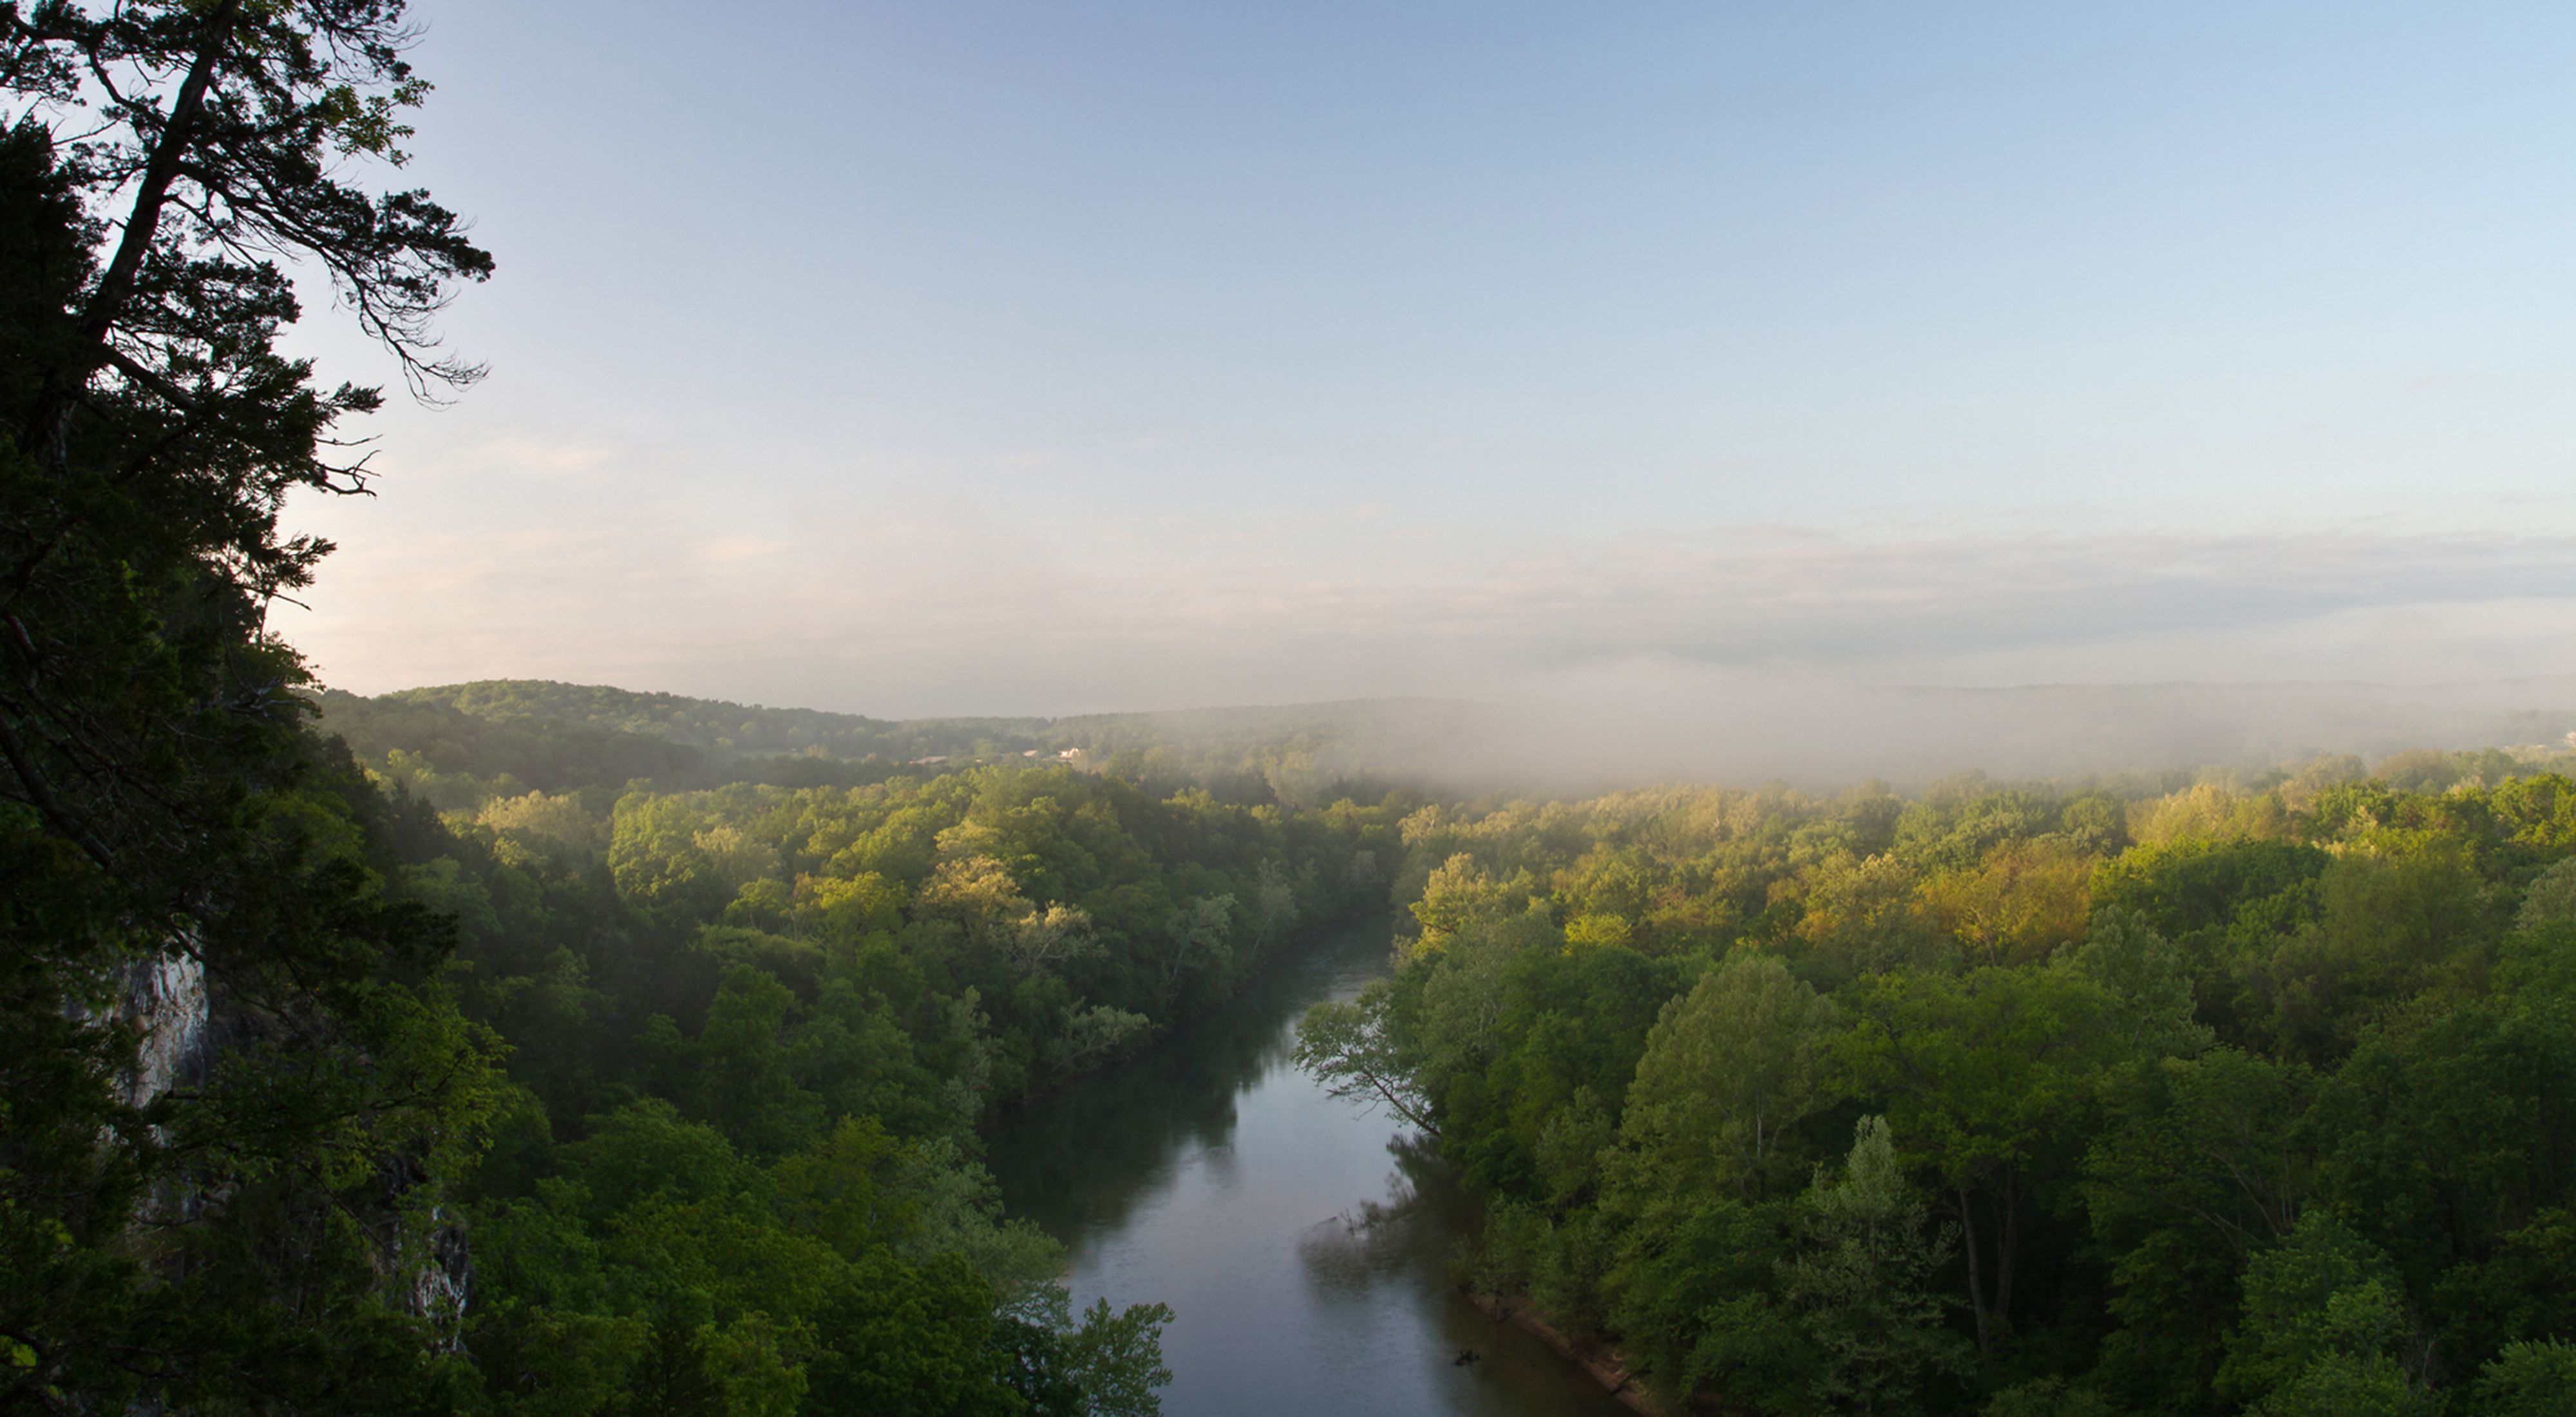 overlooking the Meramec River in Missouri.